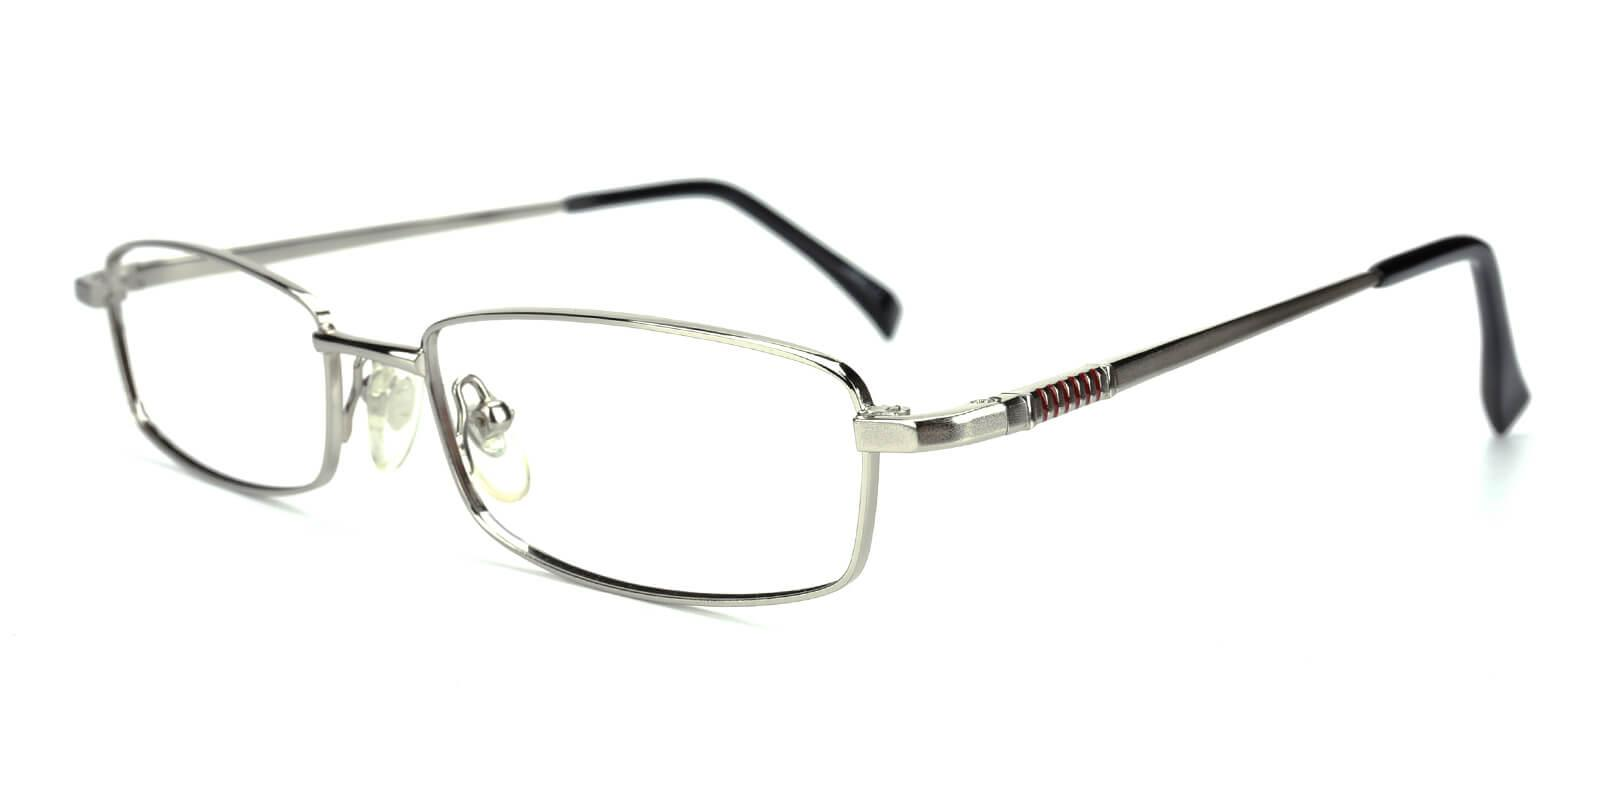 Chistopol-Silver-Rectangle-Metal-Eyeglasses-additional1